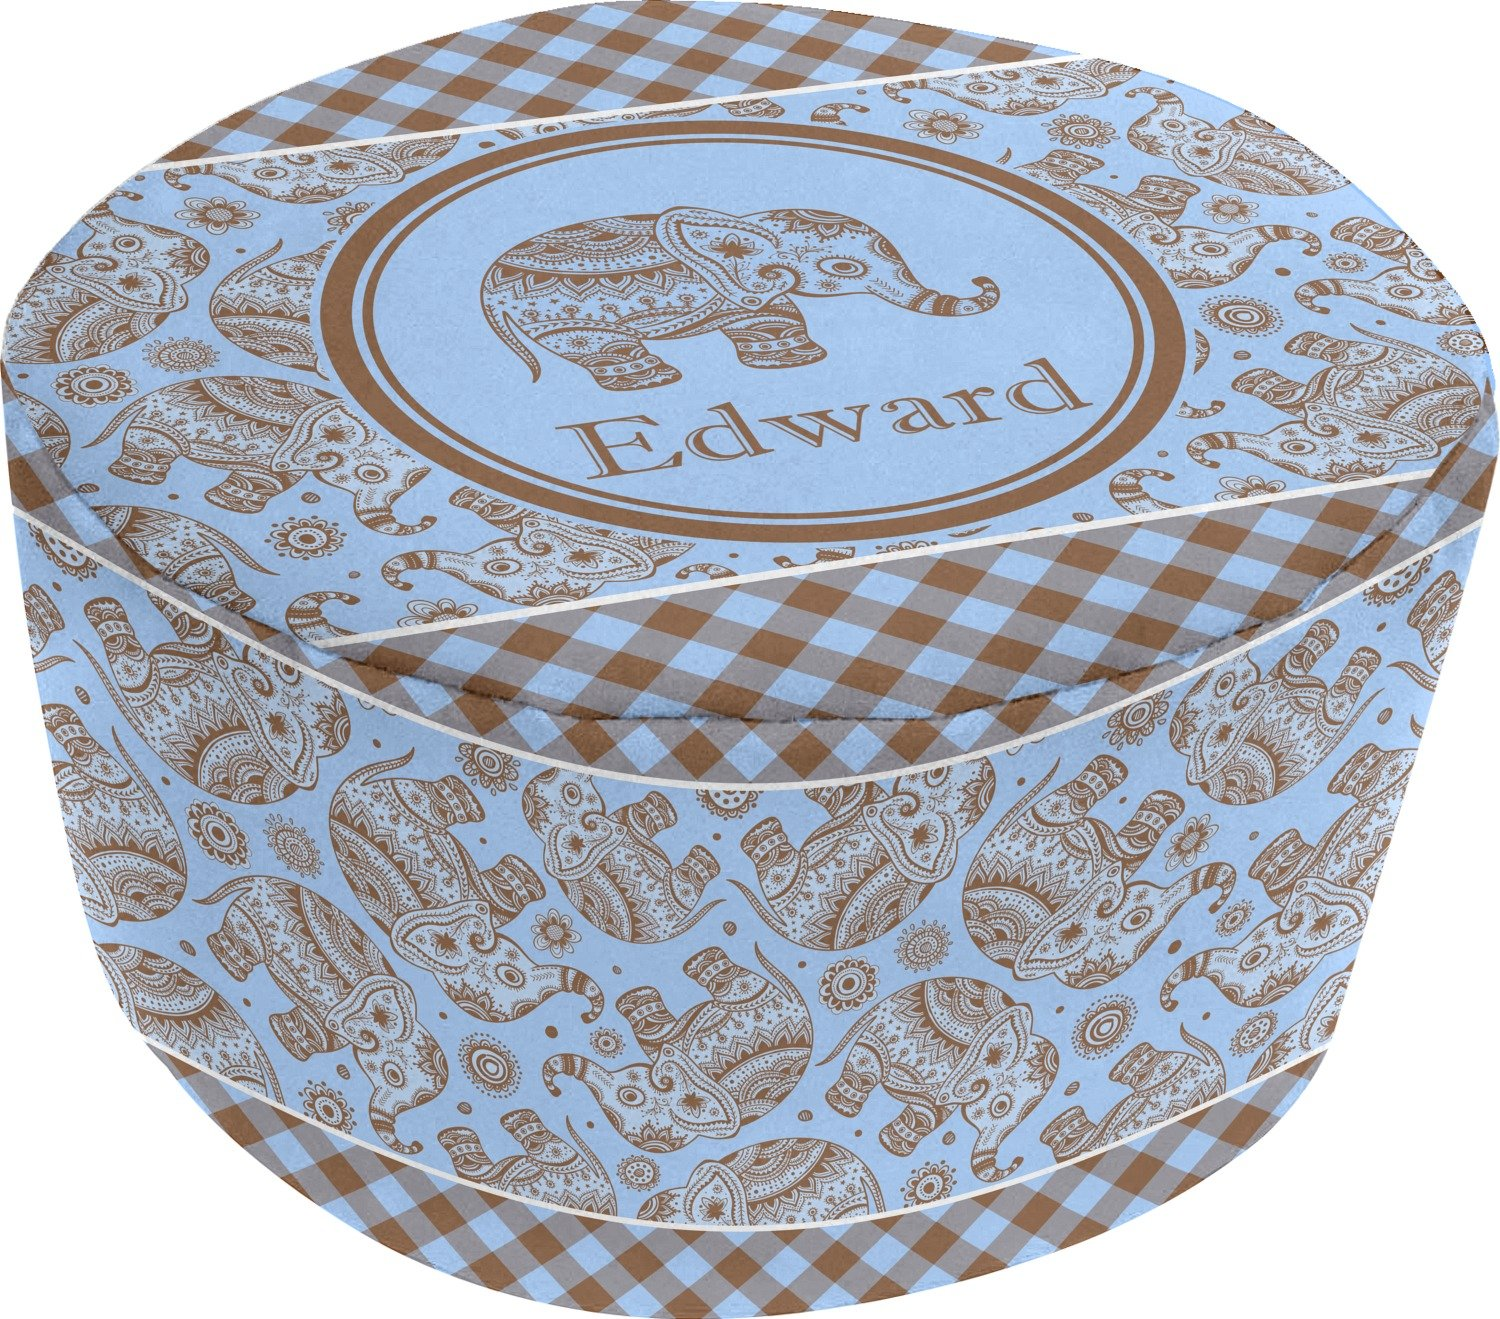 Gingham & Elephants Round Pouf Ottoman (Personalized)